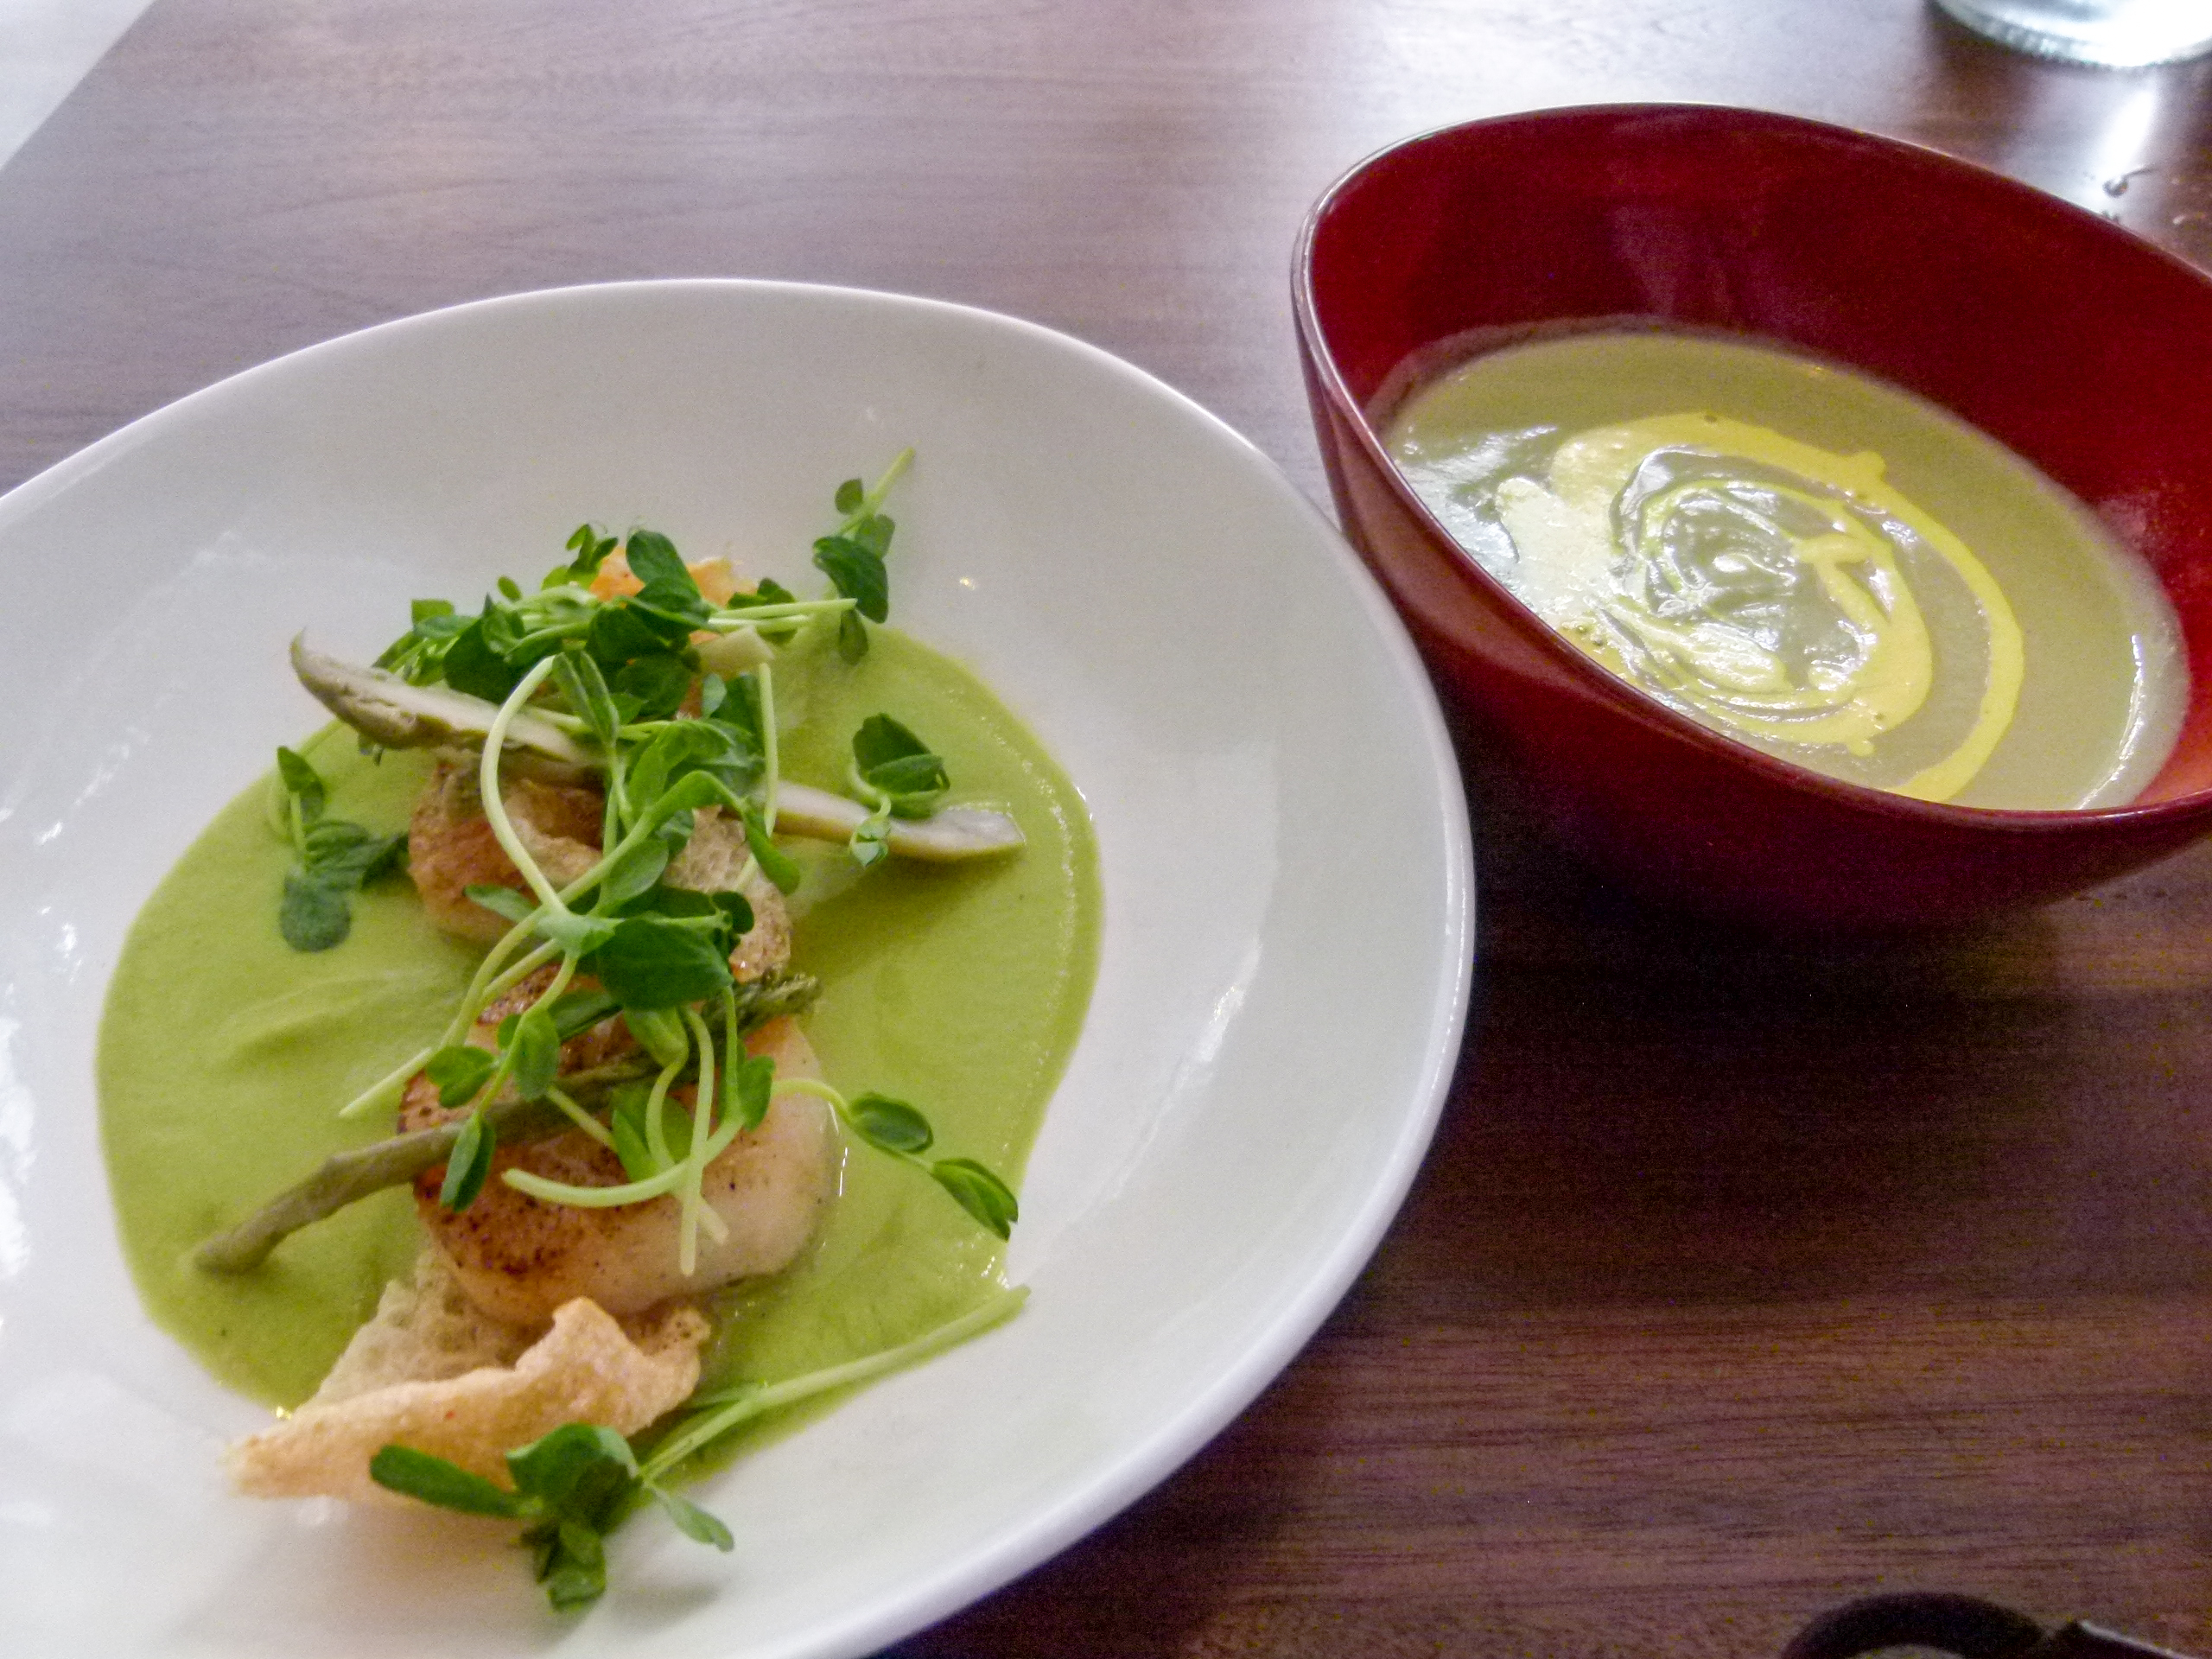 Sea scallops appetizer with ramp and cauliflower soup.